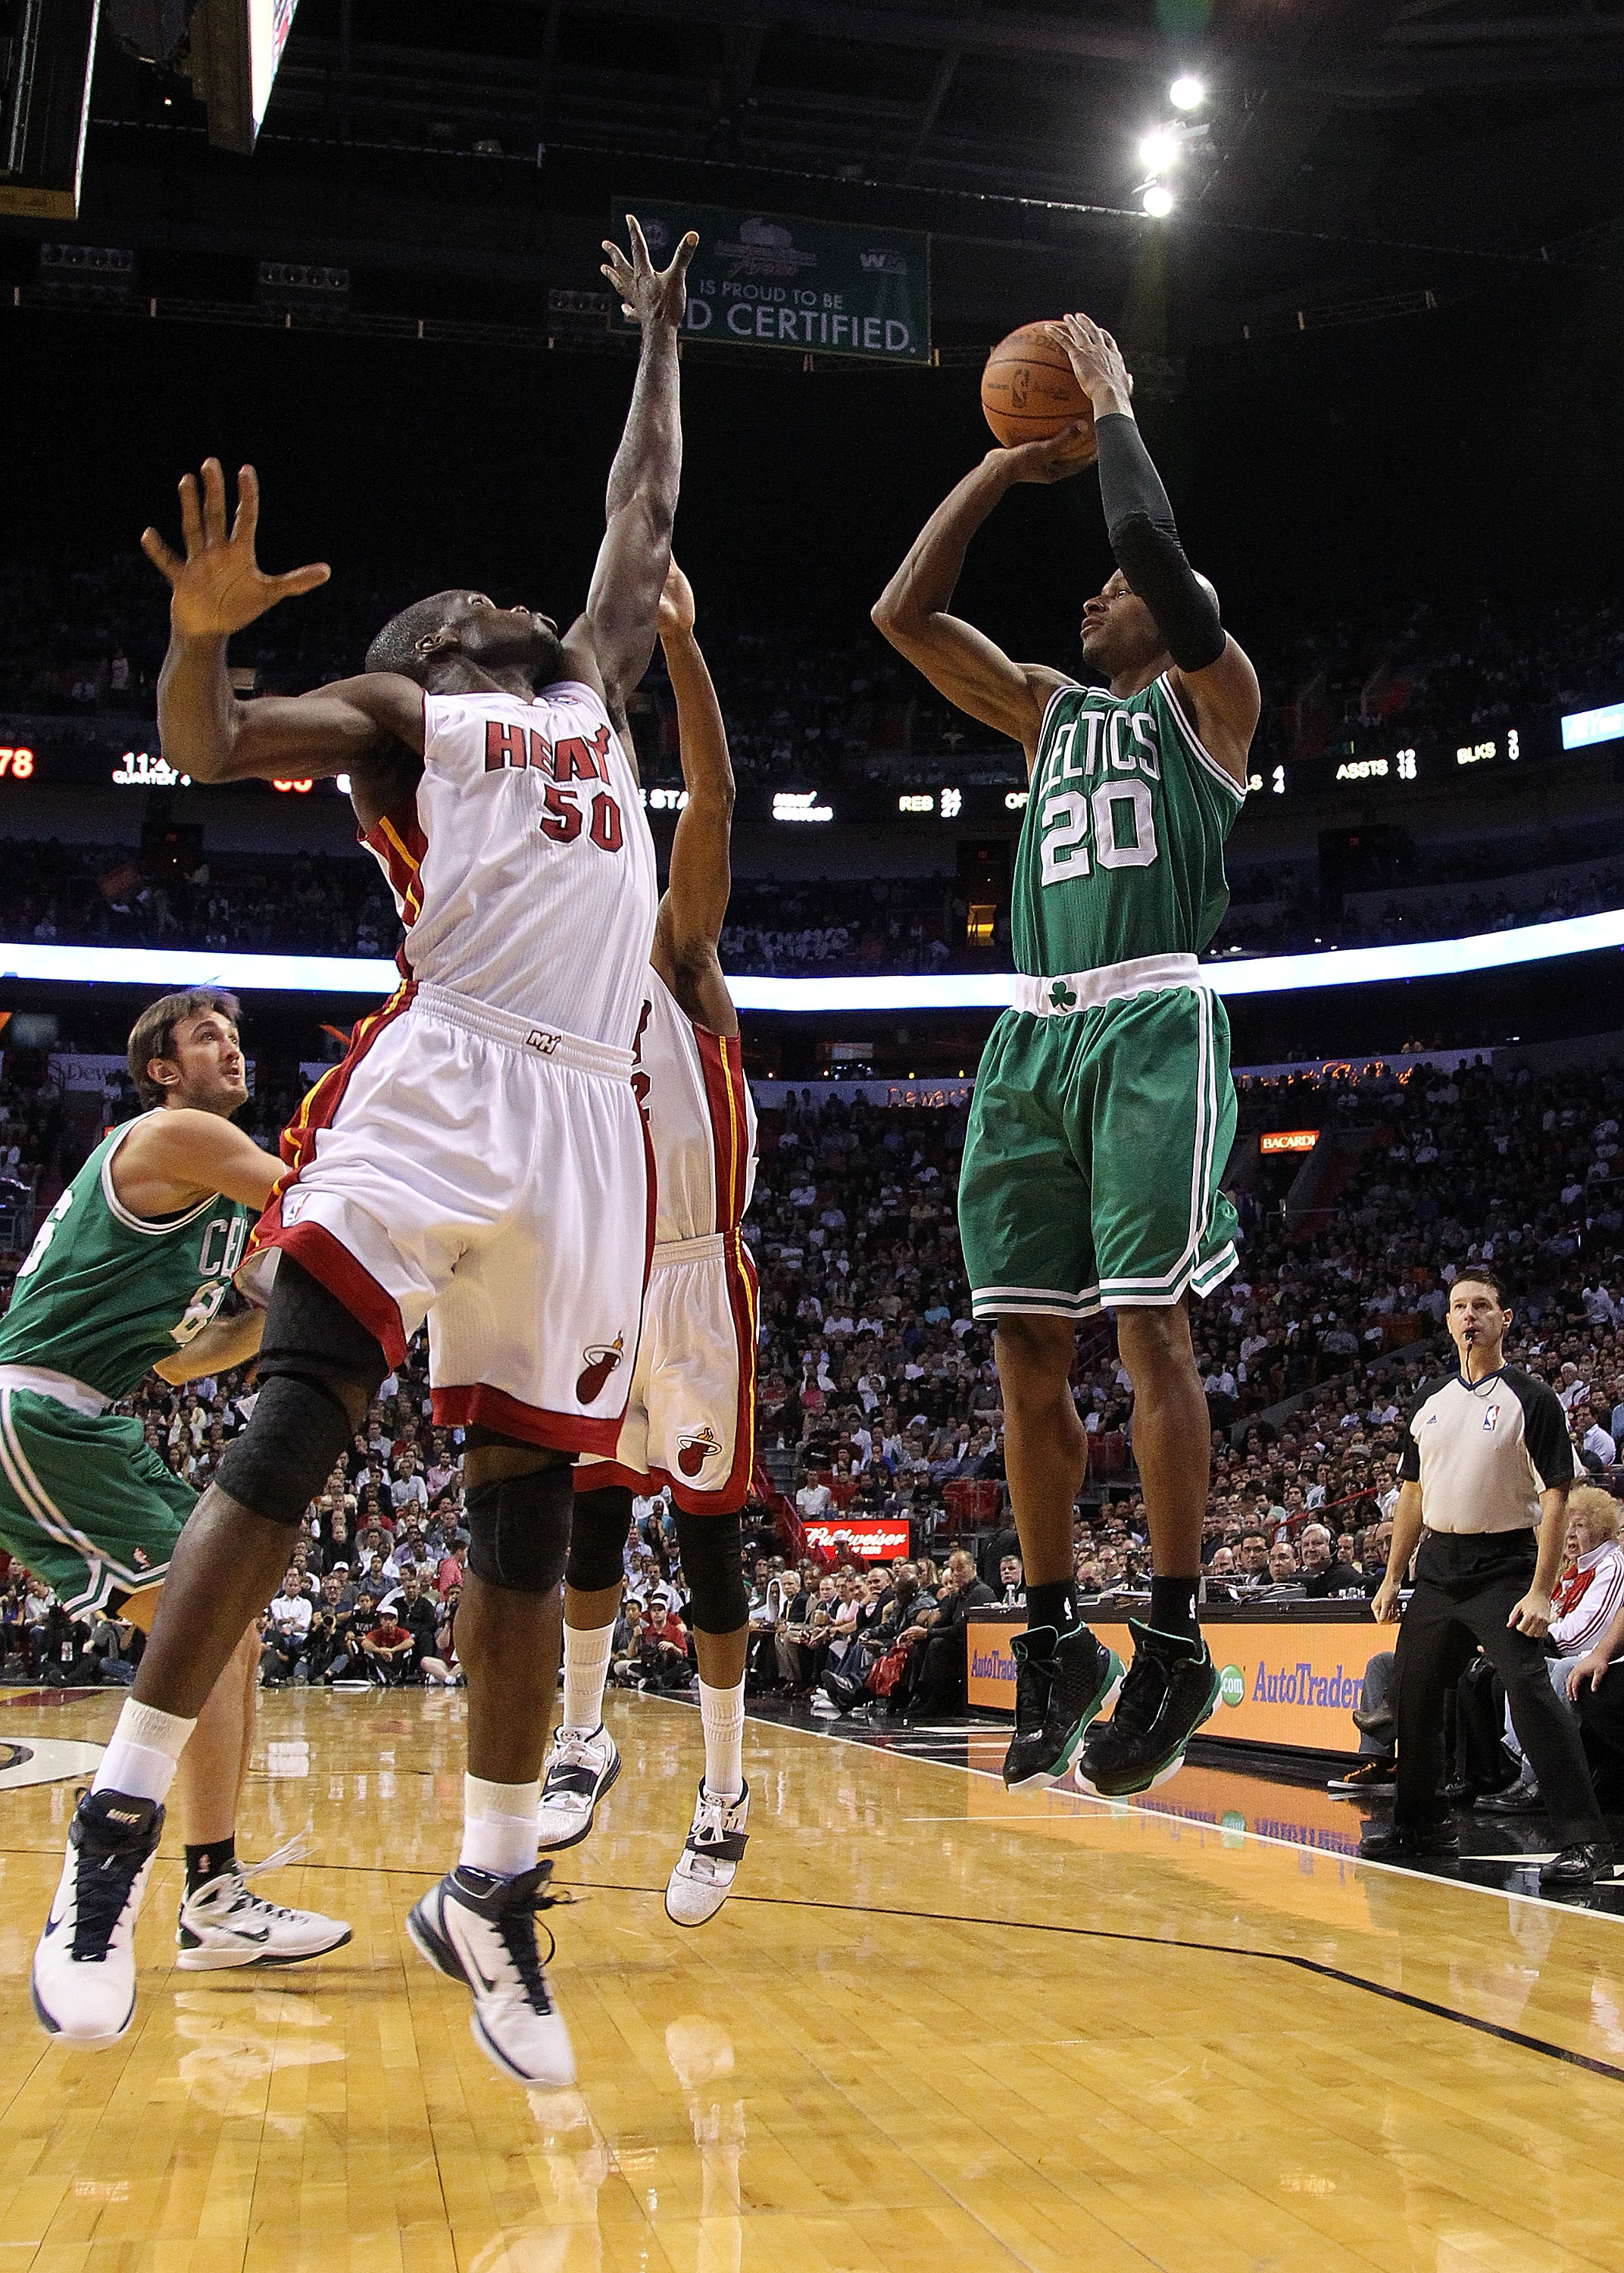 MIAMI - NOVEMBER 11: Ray Allen #20 of the Boston Celtics shoots a jump shot during a game against the Miami Heat at American Airlines Arena on November 11, 2010 in Miami, Florida. NOTE TO USER: User expressly acknowledges and agrees that, by downloading a